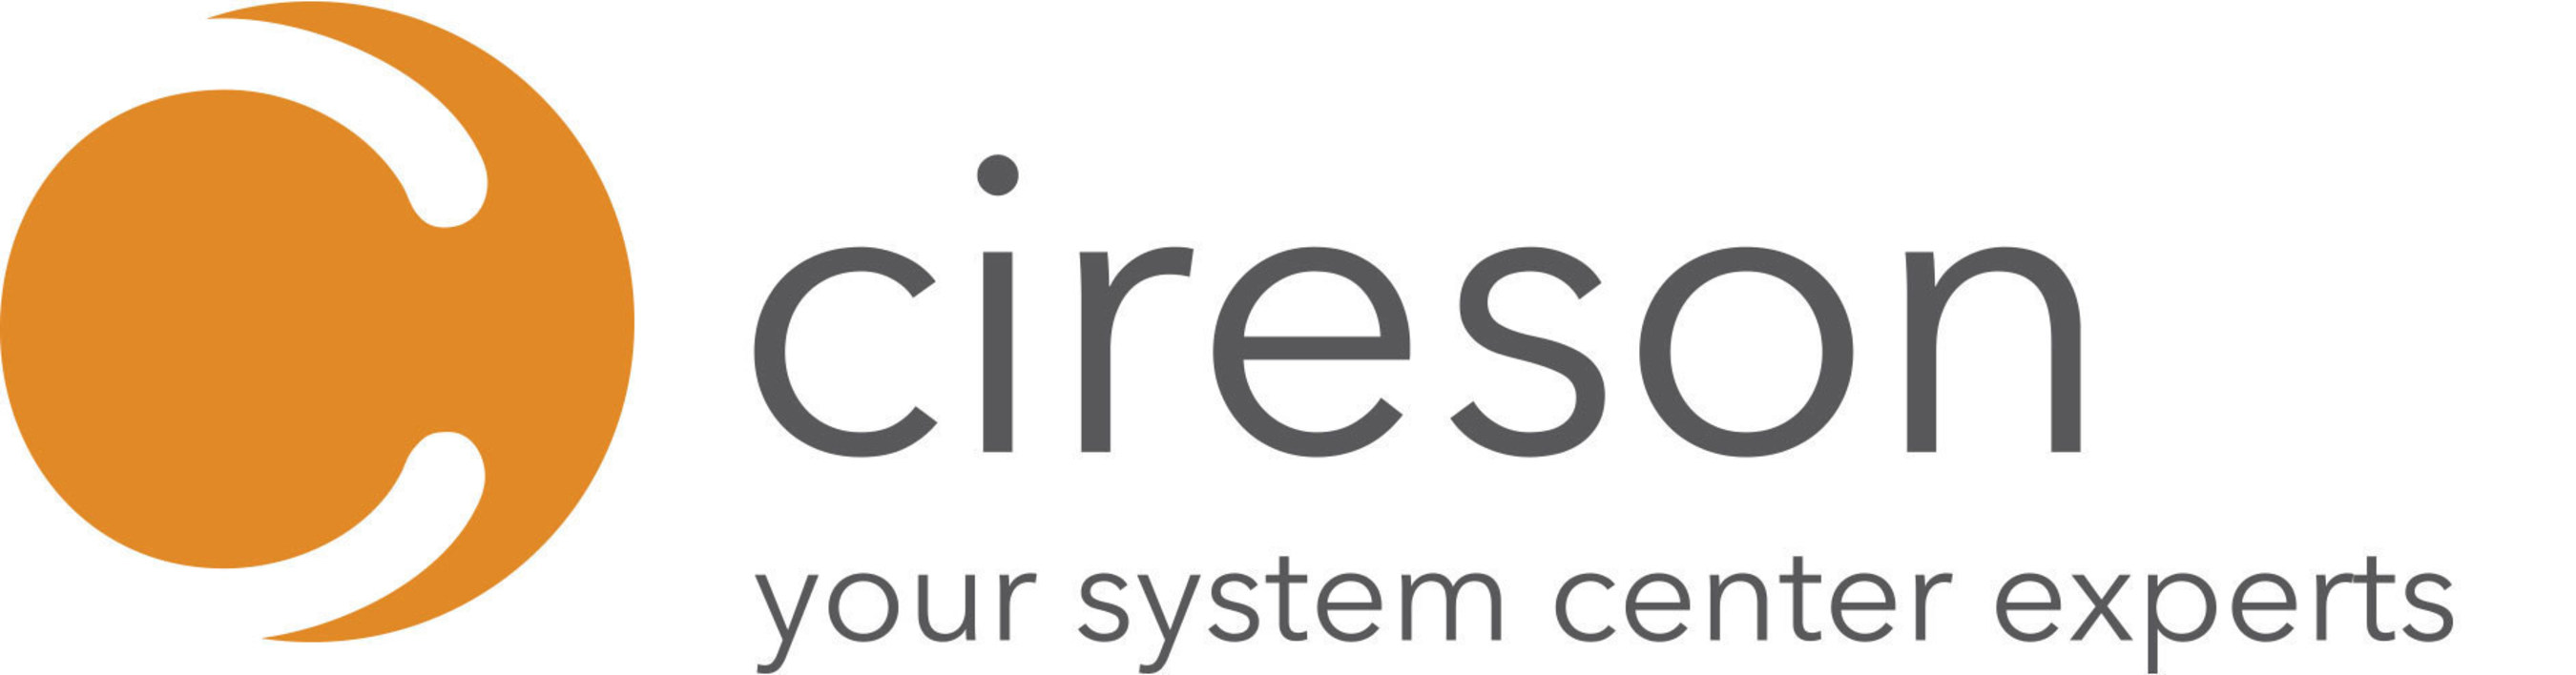 Cireson Releases New Lifecycle Management app and Migration Services to Help Organizations Successfully Execute Microsoft System Center Service Manager 2016 Migrations an